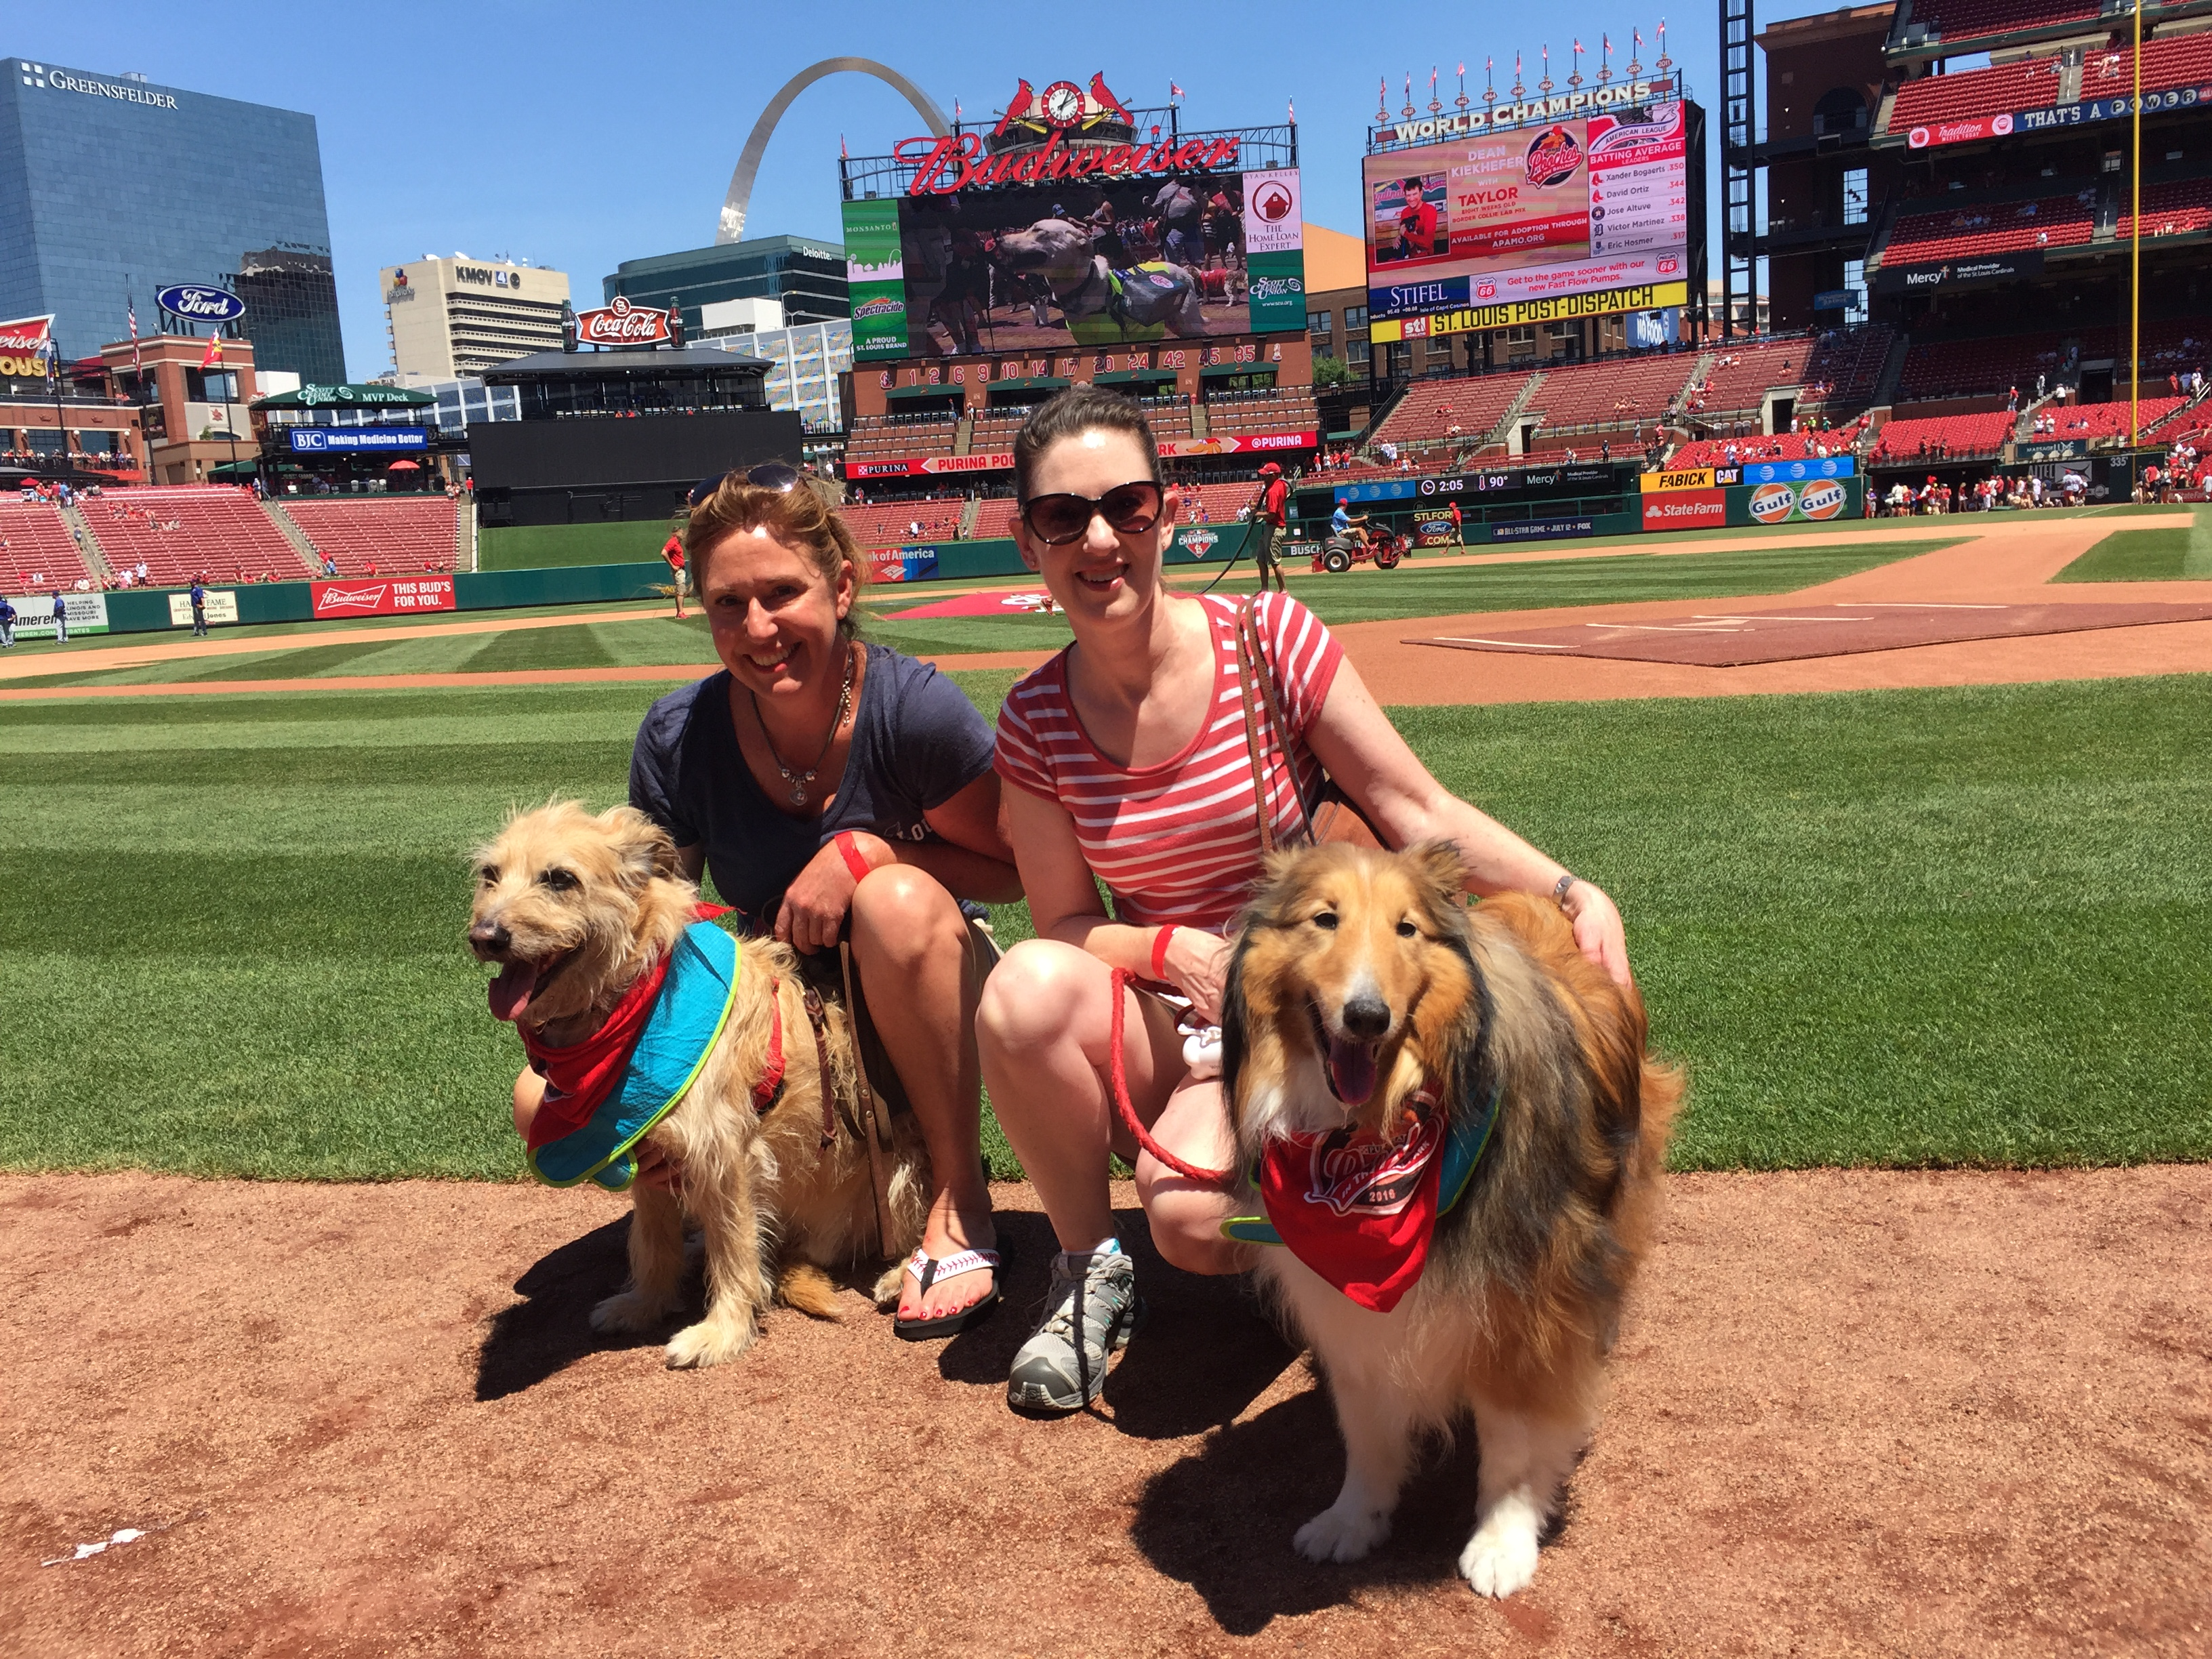 Standing on the field at Busch Stadium